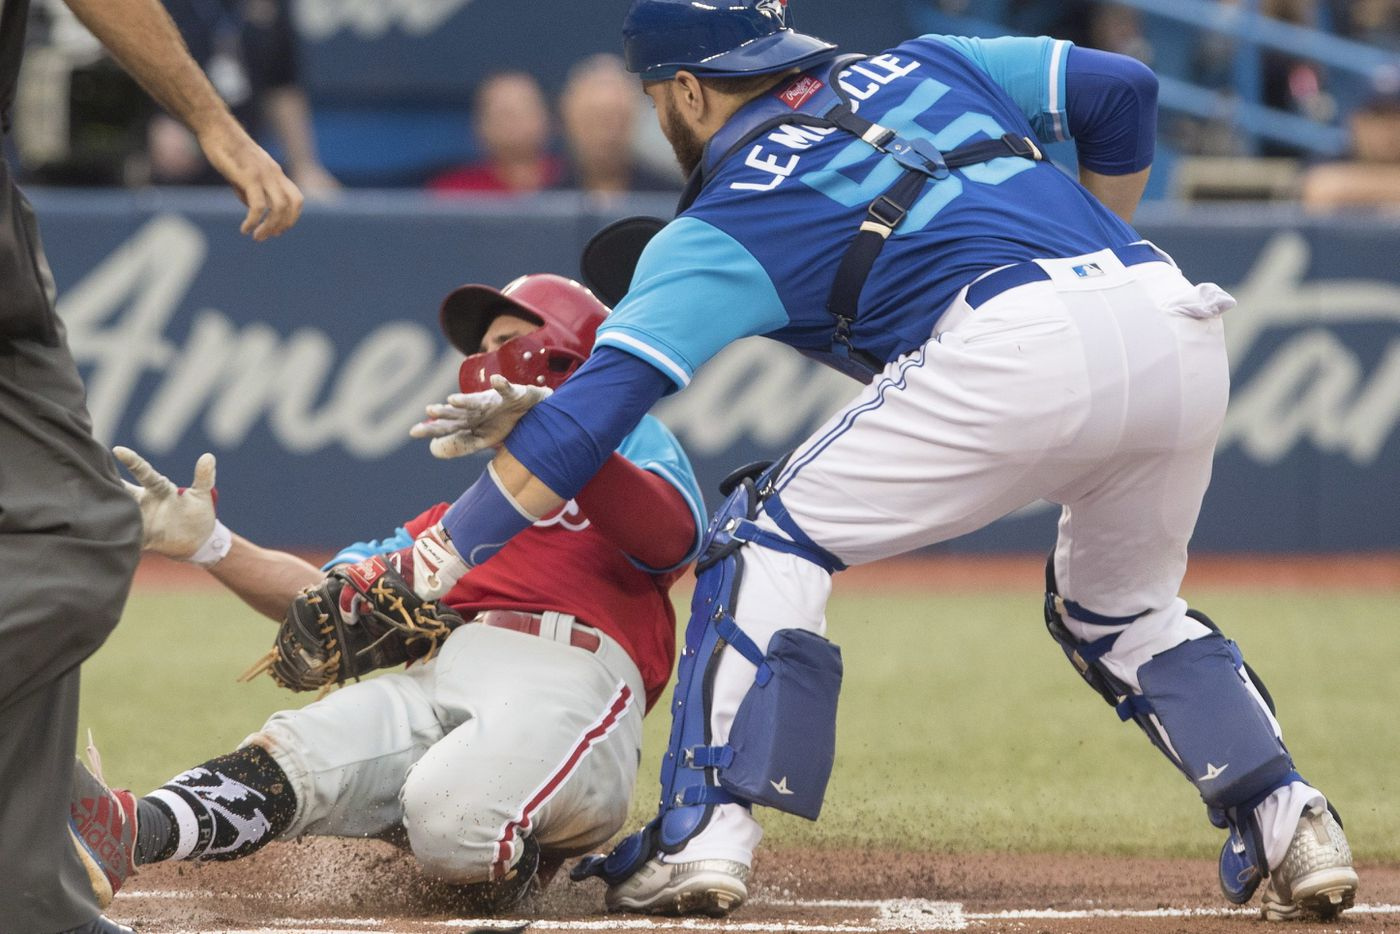 Phillies offense comes up small in loss to Blue Jays